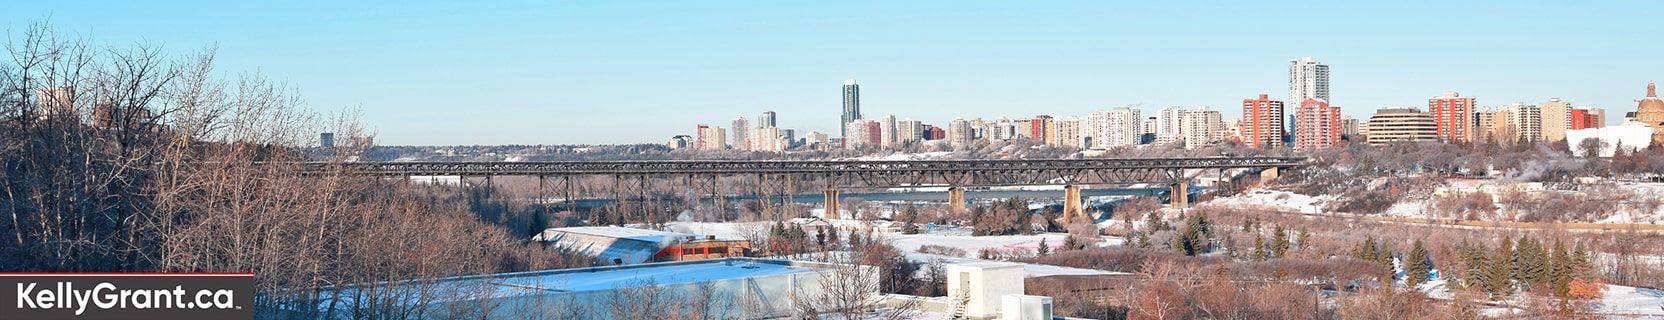 KG City of Edmonton High Level Bridge